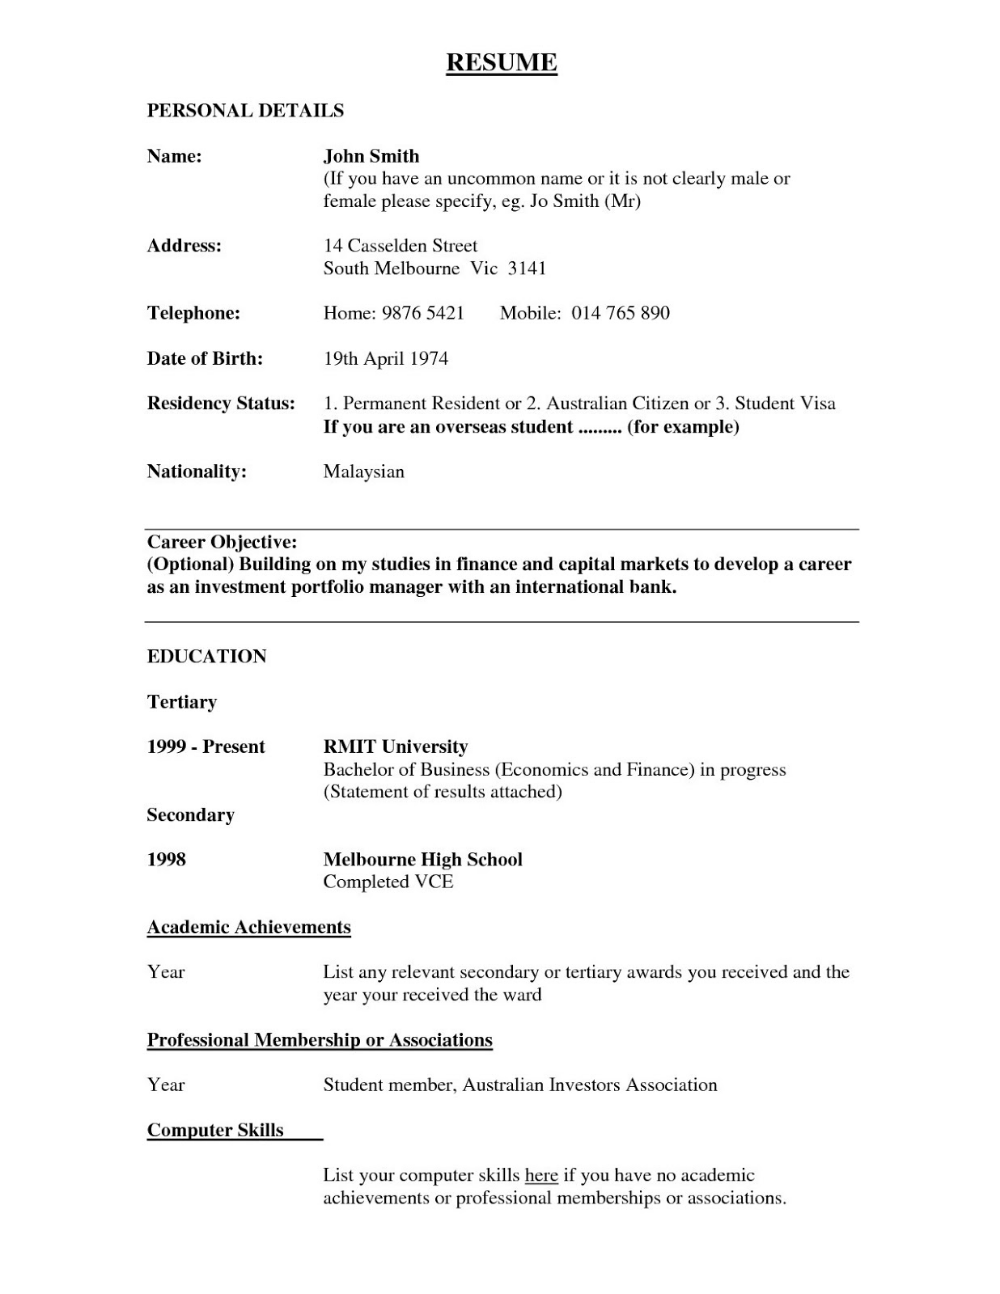 Academic Cv Uk Samples 2019 2020 (With images) Bank